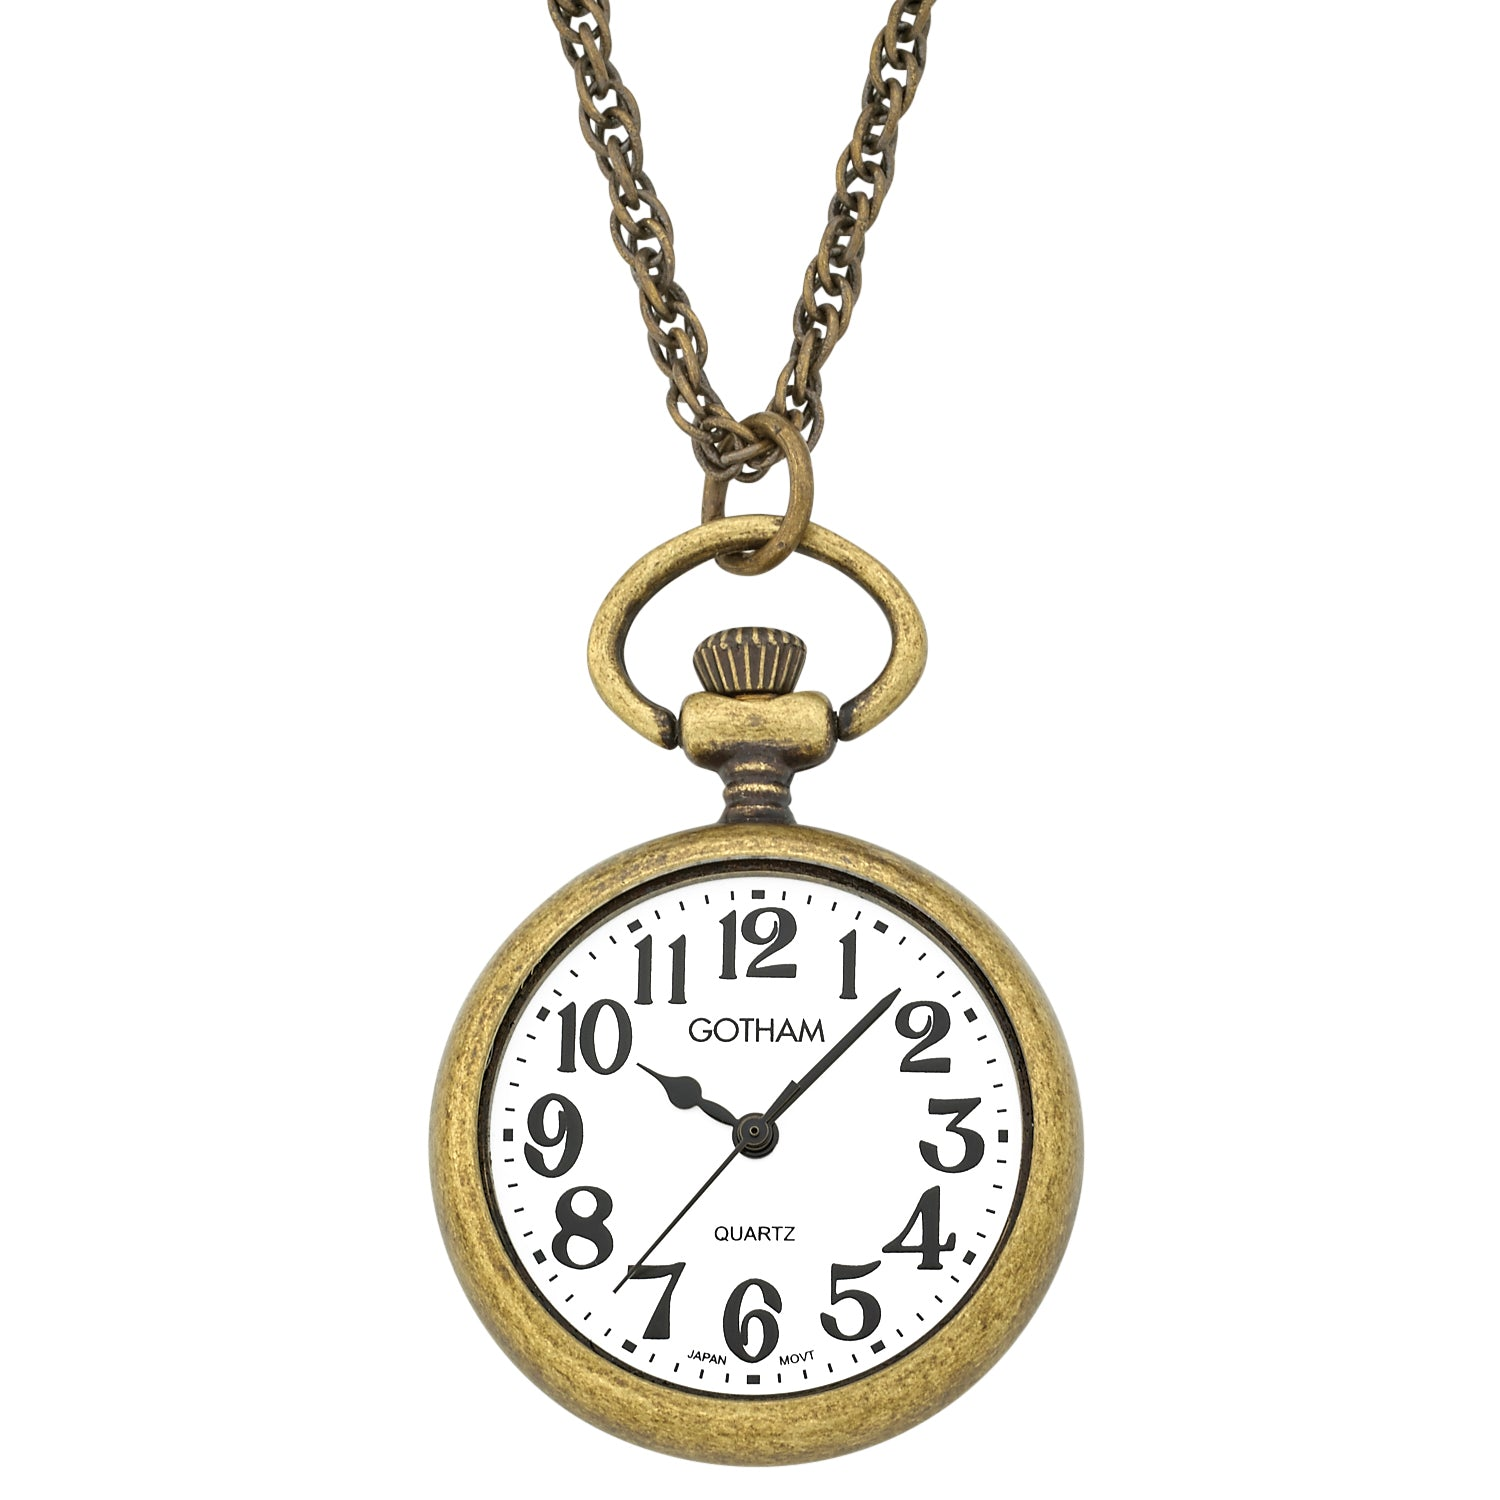 image open necklace gold plated quartz face watch woodford pendant